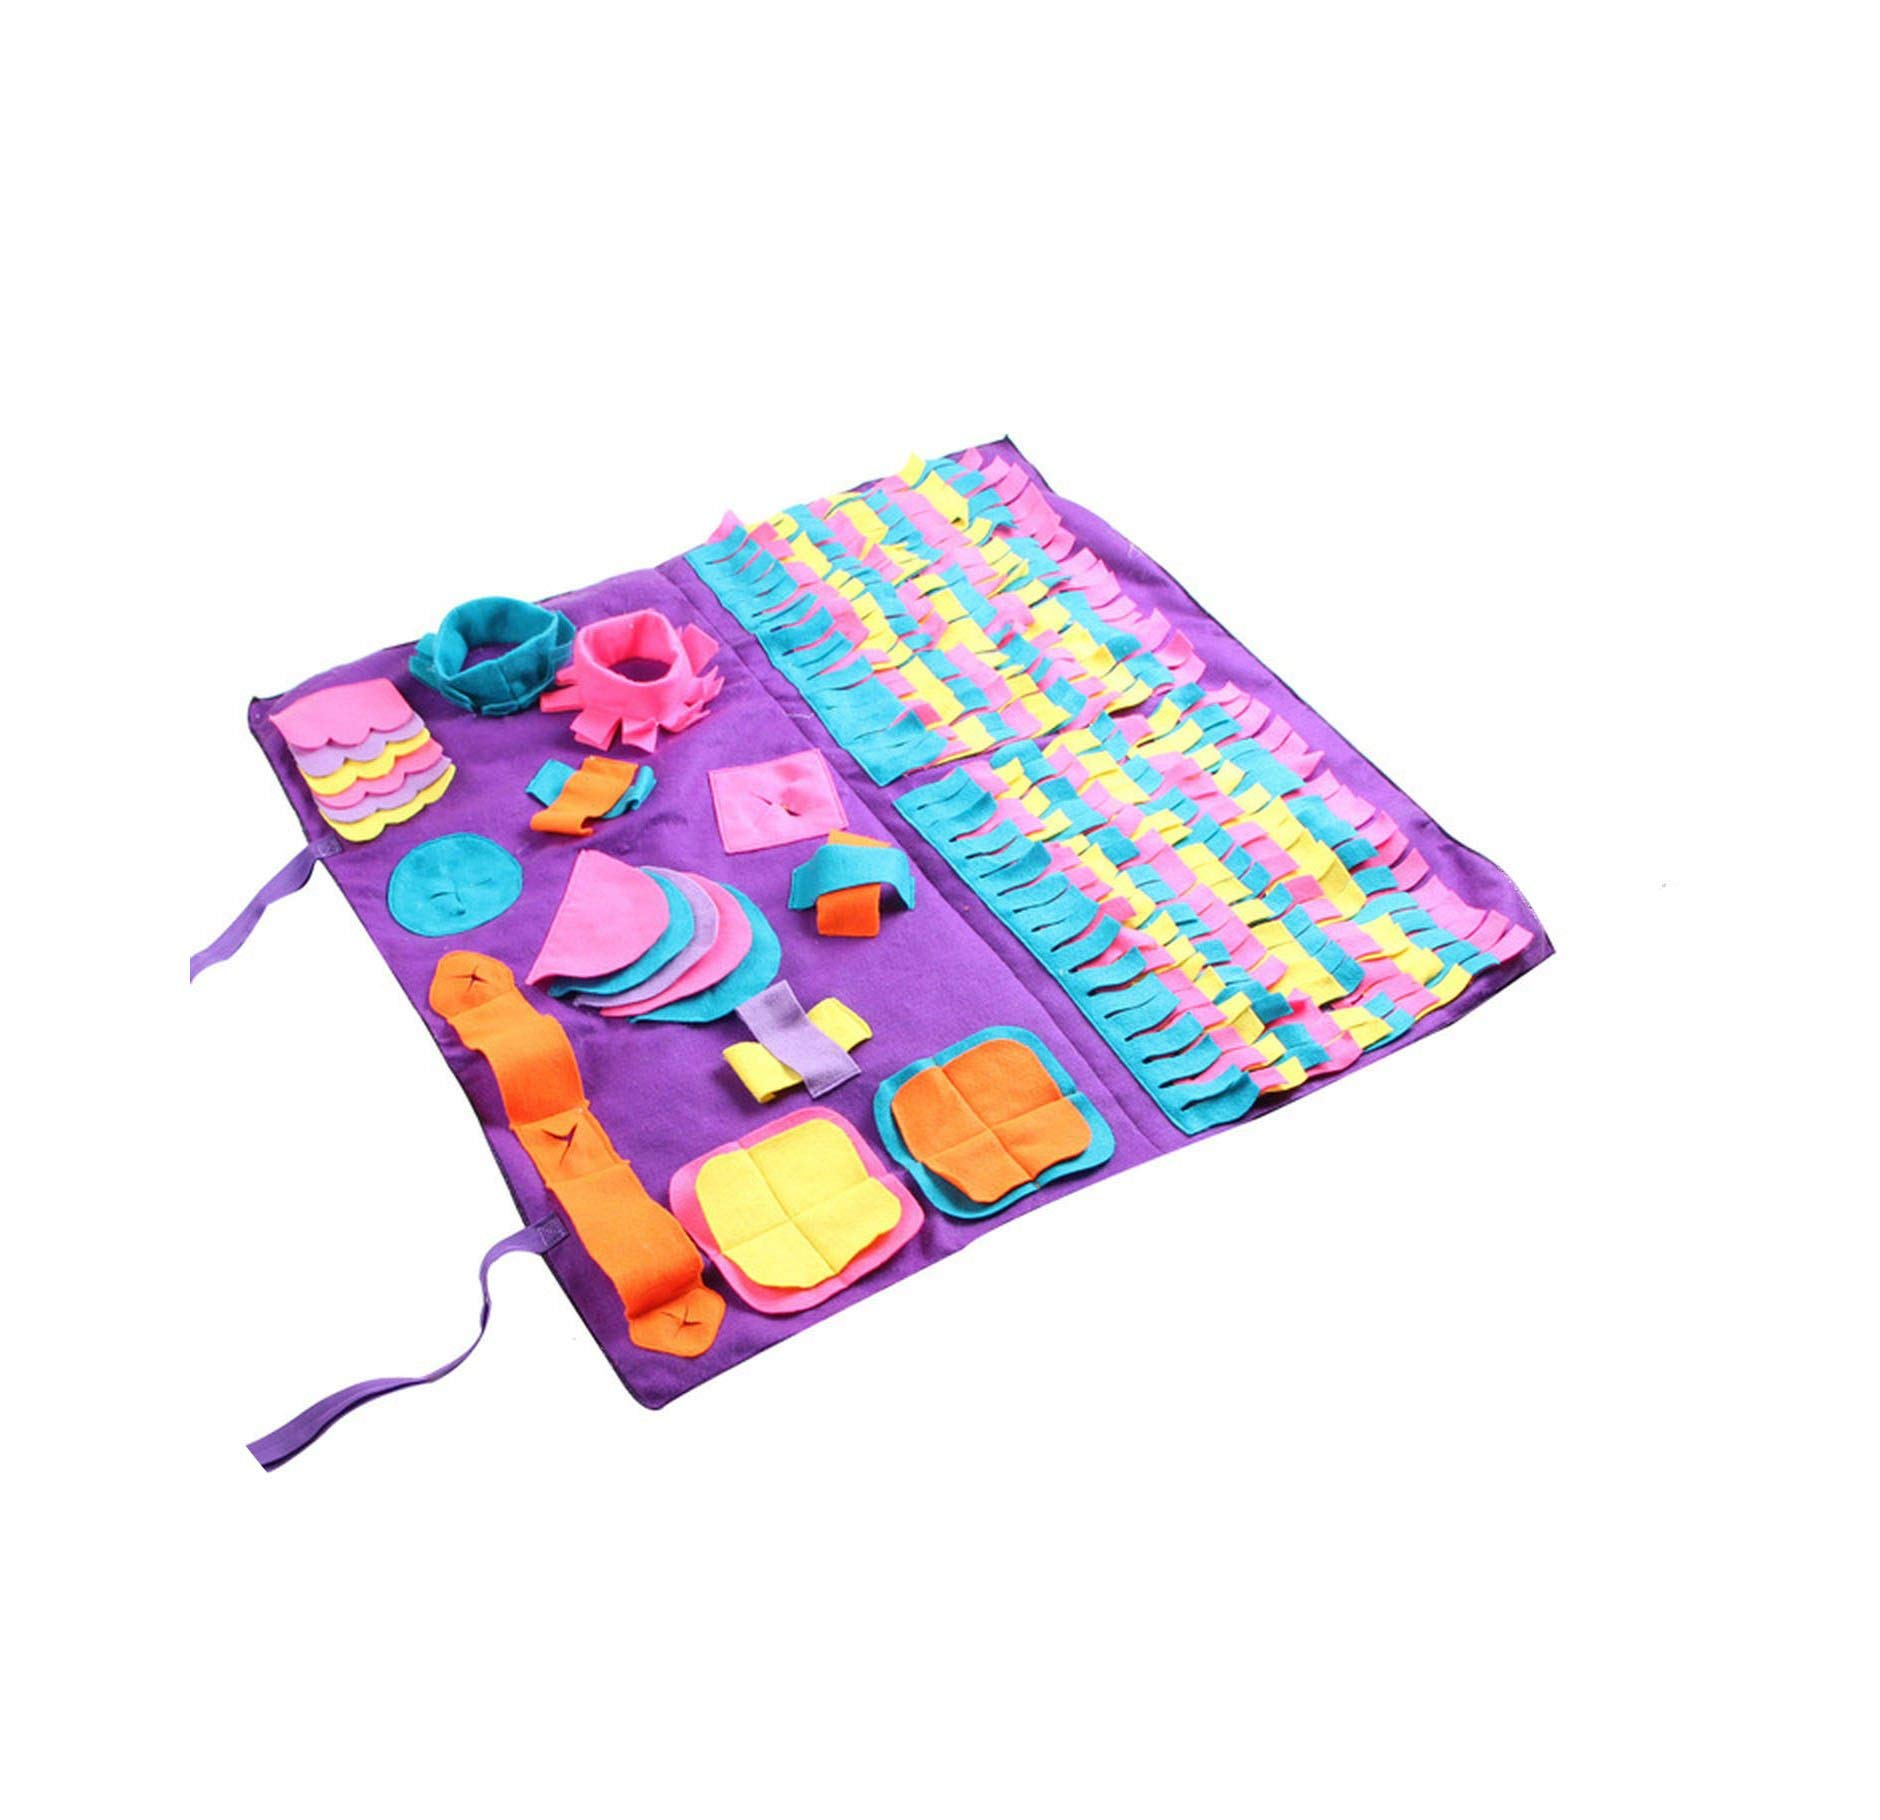 Pet Dog Sniffing Mat Find Food Training Blanket Play Toys Dog Mat for Relieve Stress Puzzle Sniffing Mat Pad, Shows,AS Shown